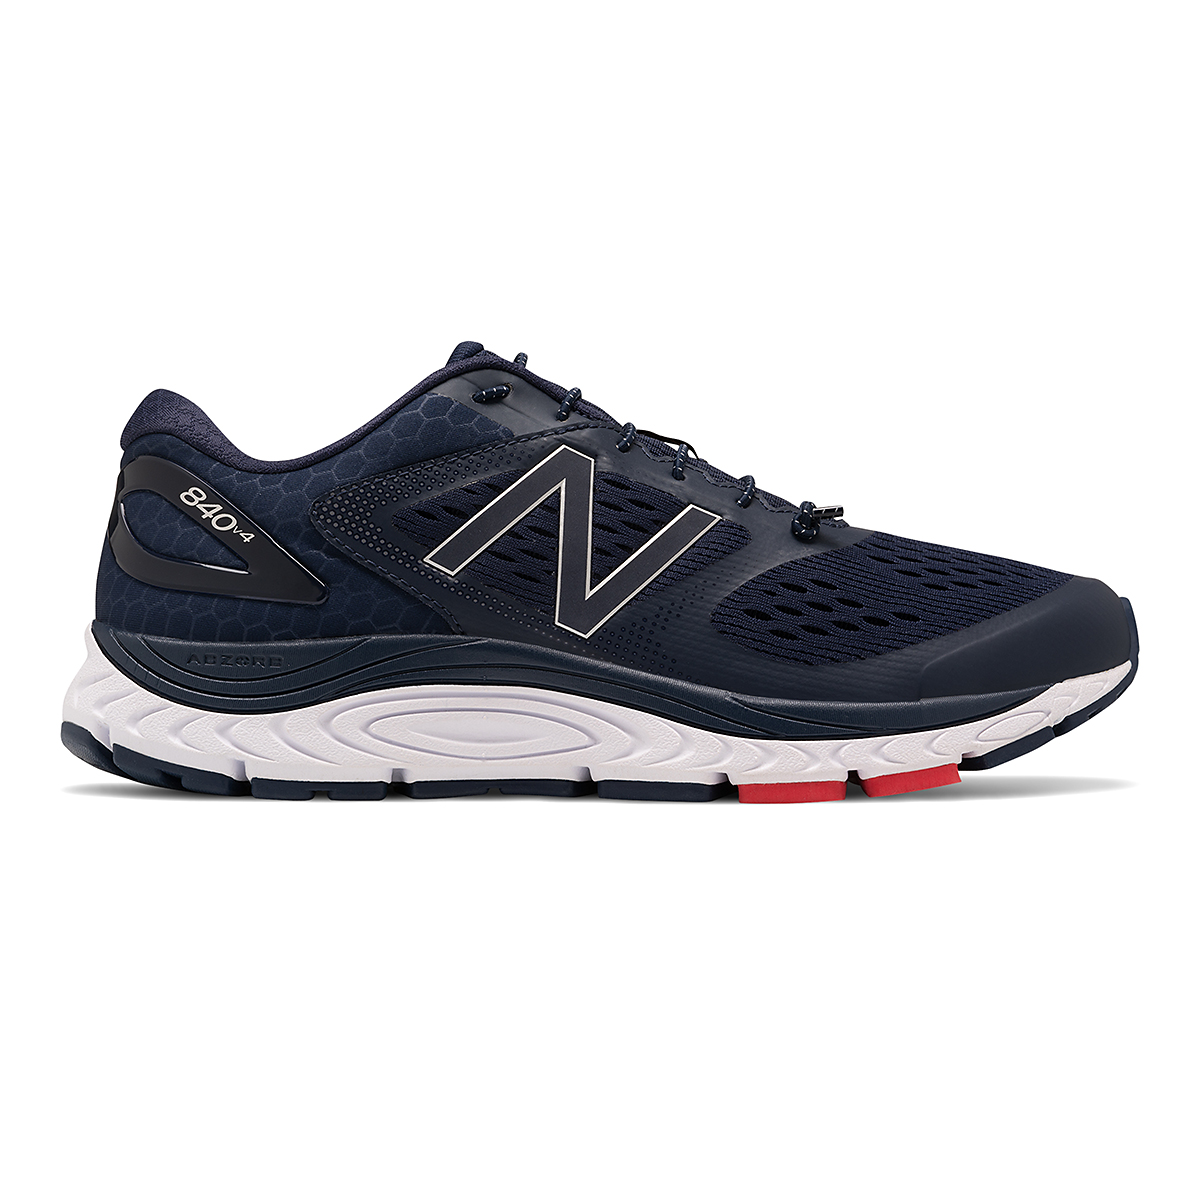 Men's New Balance 840v4 Running Shoe - Color: Pigment/White - Size: 7 - Width: Wide, Pigment/White, large, image 1